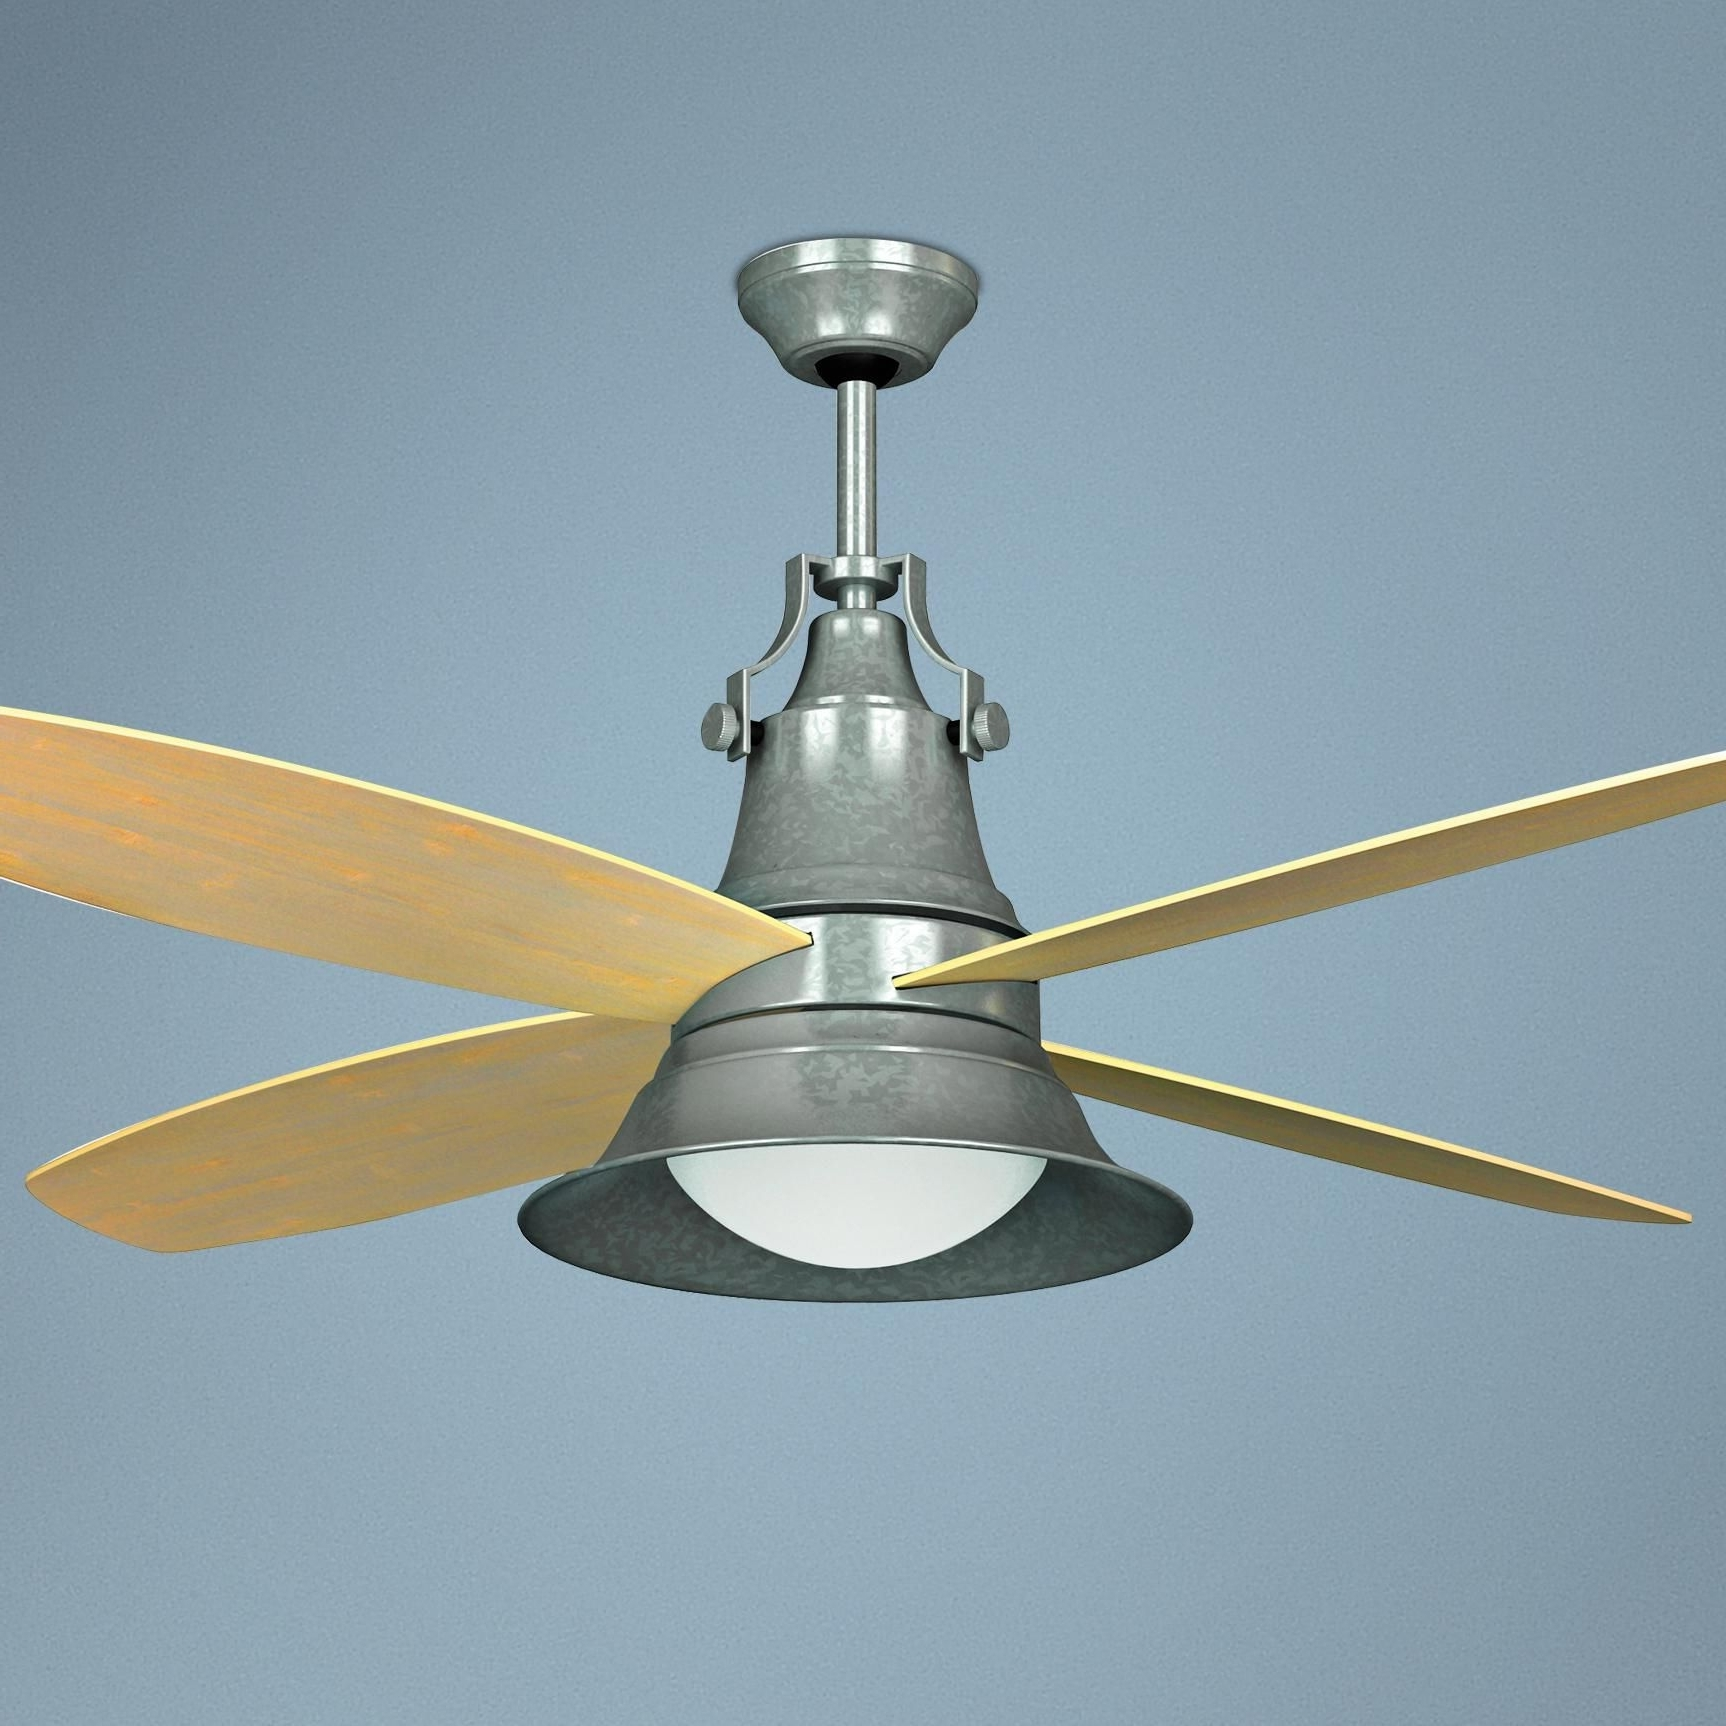 Lampsplus Within Fashionable Galvanized Outdoor Ceiling Fans With Light (View 19 of 20)